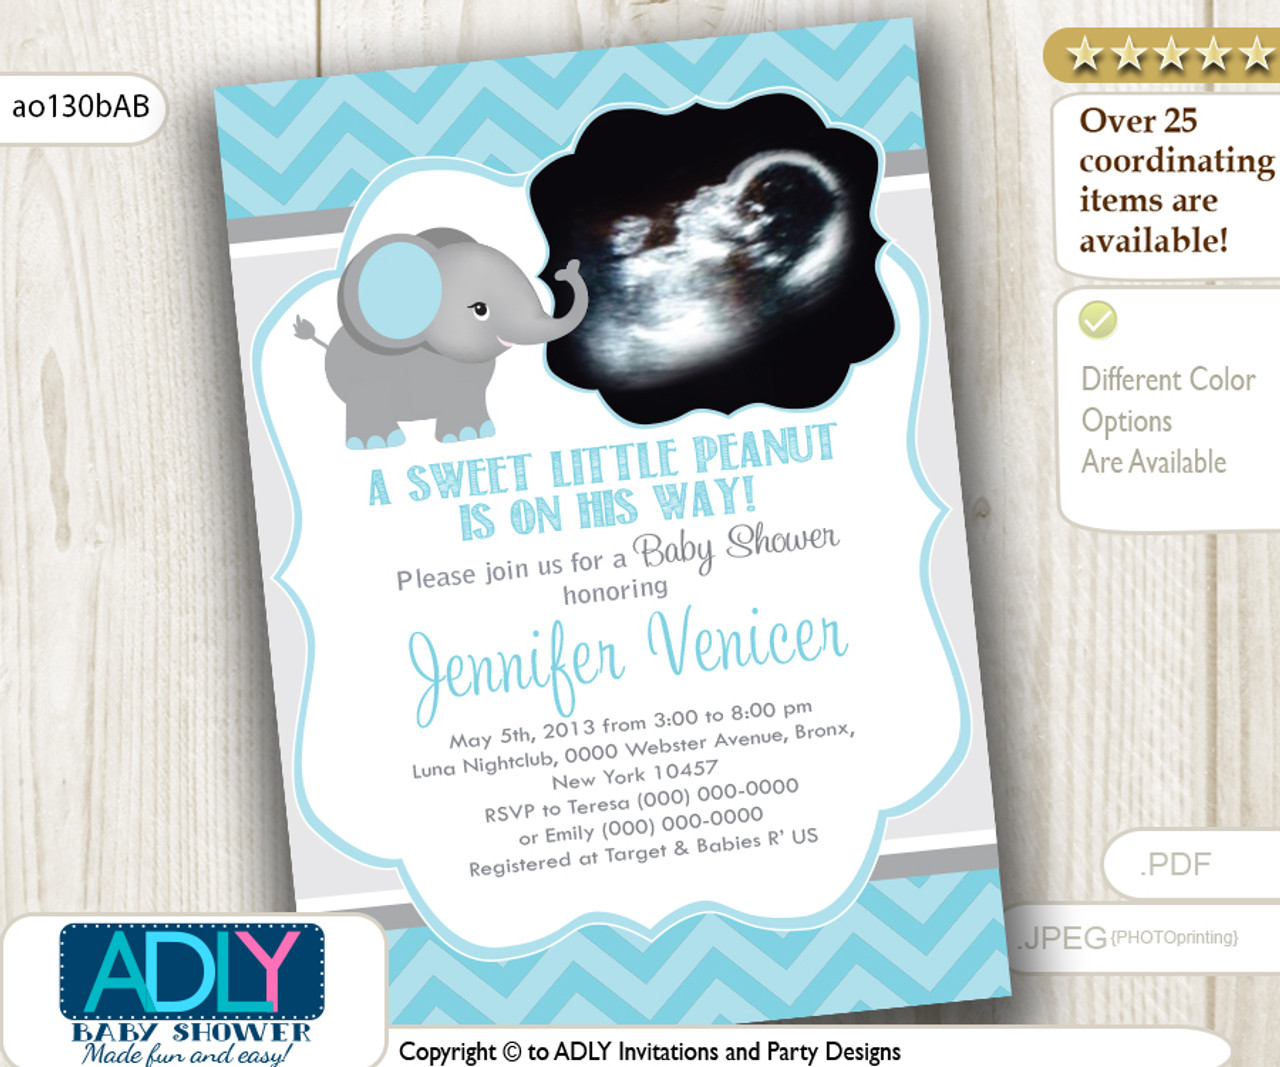 09a23a0b4 Mint/Light Turquoise Grey Elephant Ultrasound Photo Baby Shower invitation  for a Boy, chevron - ADLY Invitations and Digital Party Designs